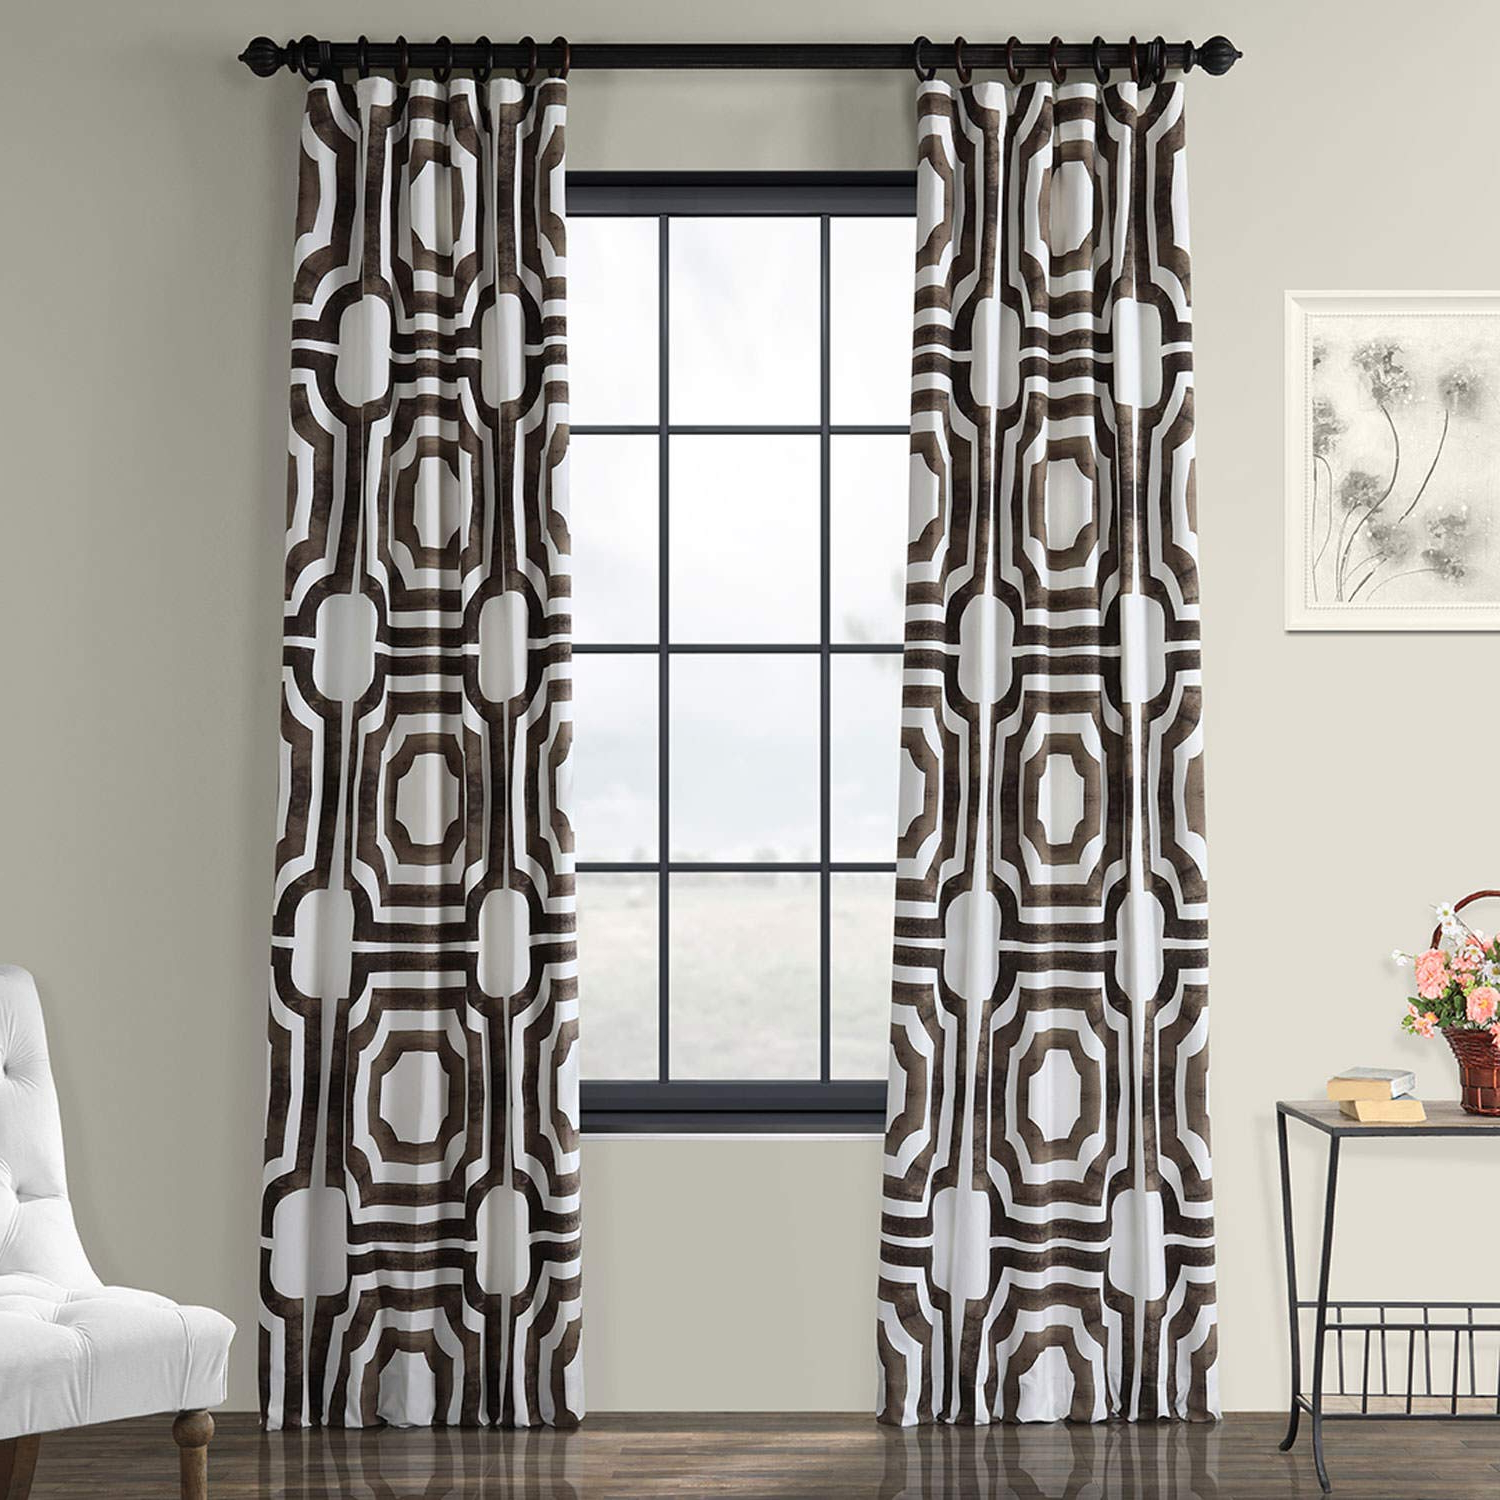 Mecca Printed Cotton Single Curtain Panels With Regard To Recent Half Price Drapes Prtw D23 96 Mecca Printed Cotton Curtain, 50 X 96, Brown (Gallery 3 of 21)